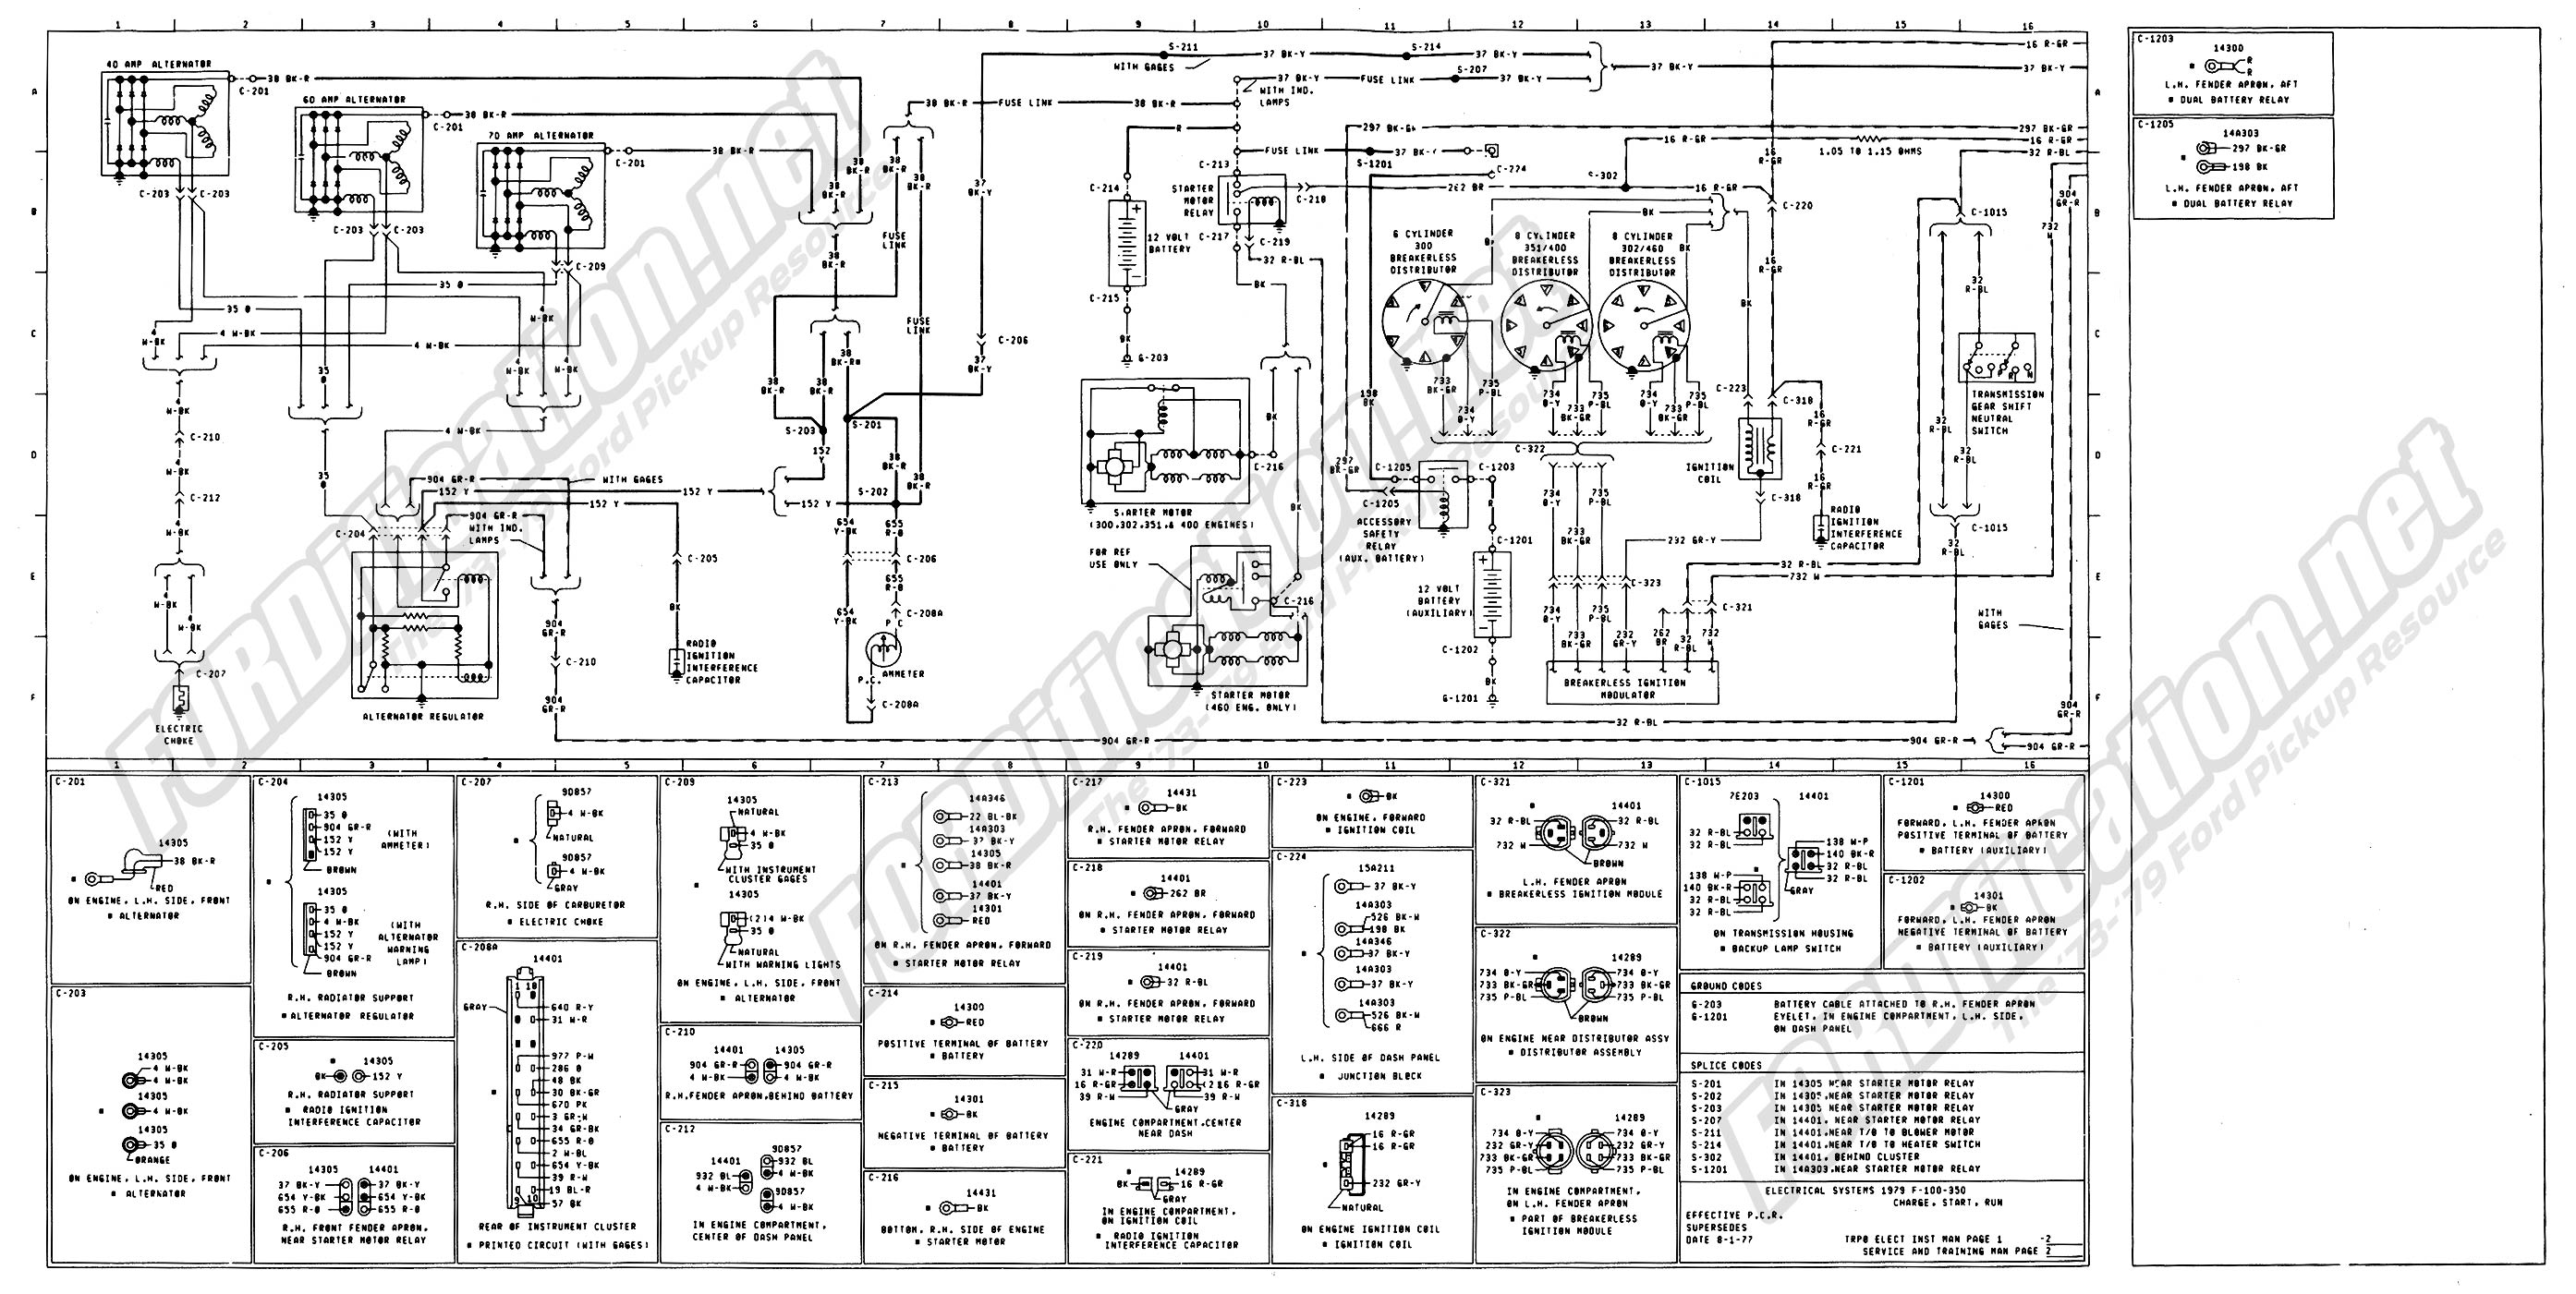 wiring_79master_2of9 1973 1979 ford truck wiring diagrams & schematics fordification net 1999 F150 Radio Wiring Diagram at gsmx.co